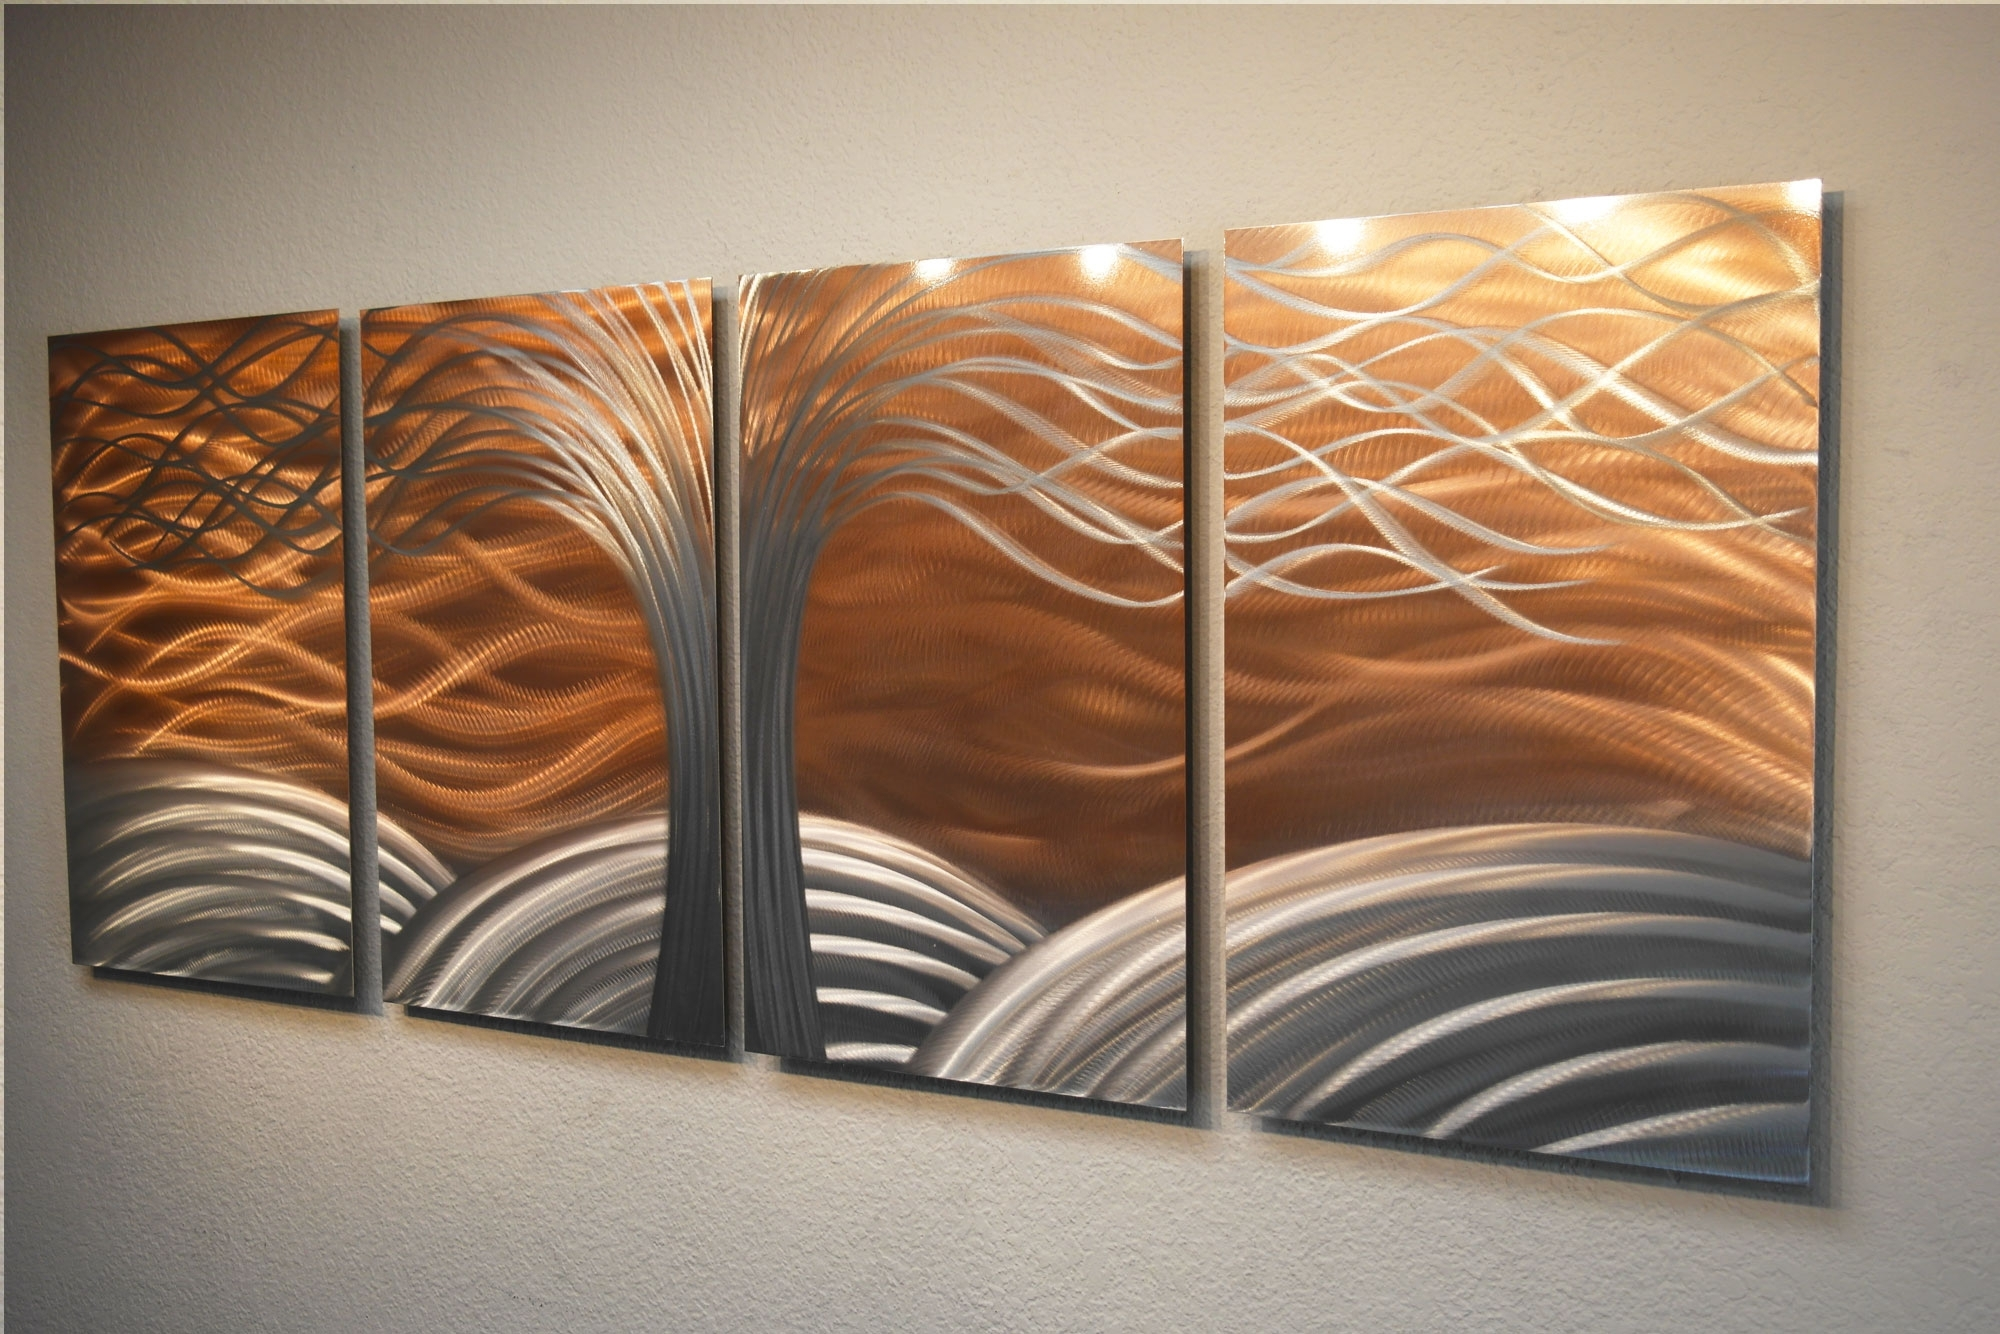 Tree Of Life Bright Copper - Metal Wall Art Abstract Sculpture inside Copper Wall Art (Image 18 of 20)